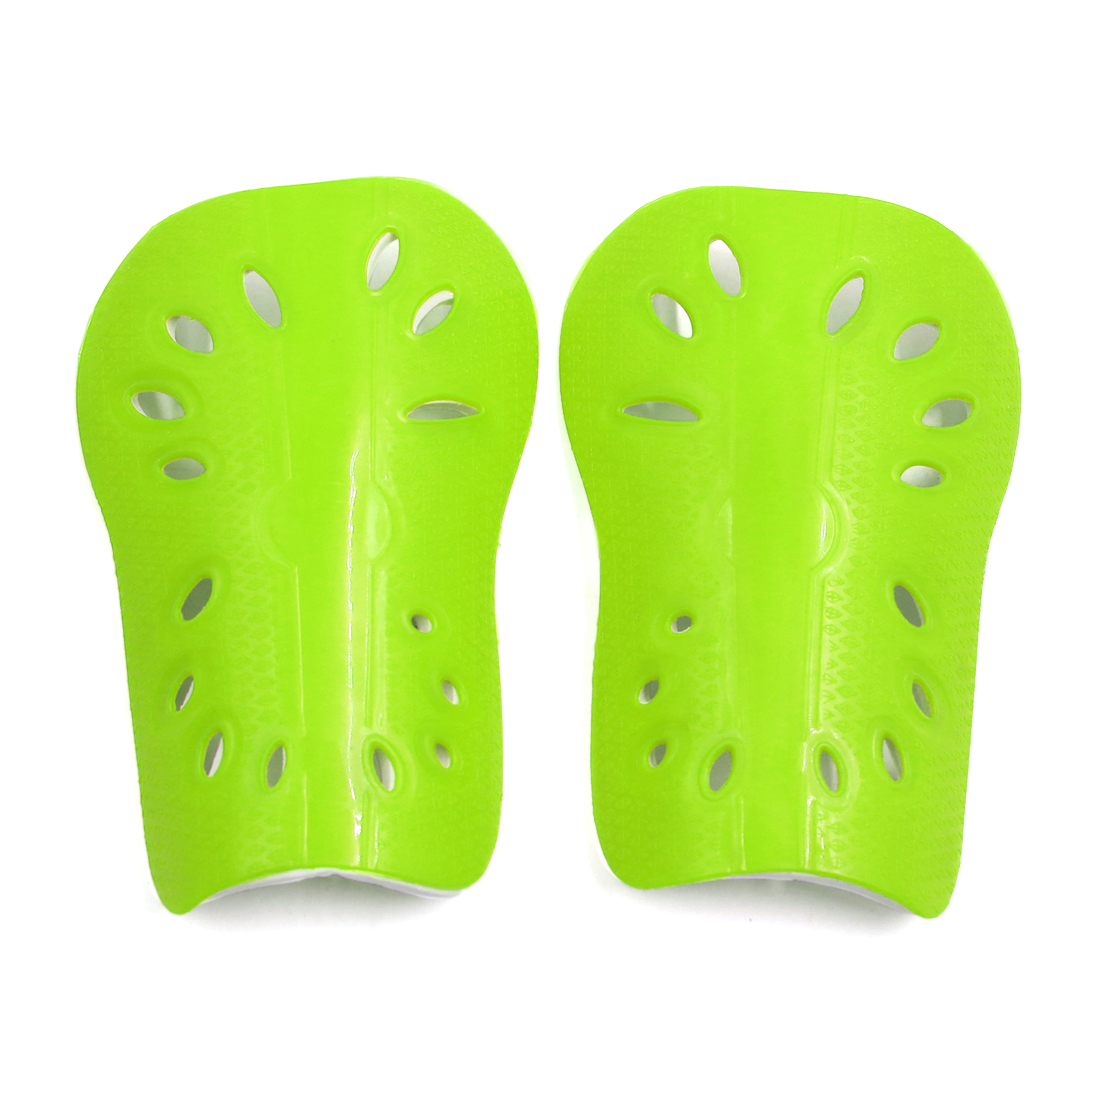 1 Pair Fluorescent Yellow Kids Football Outdoor Sports Shin Pad Protective Gear Legs Guards